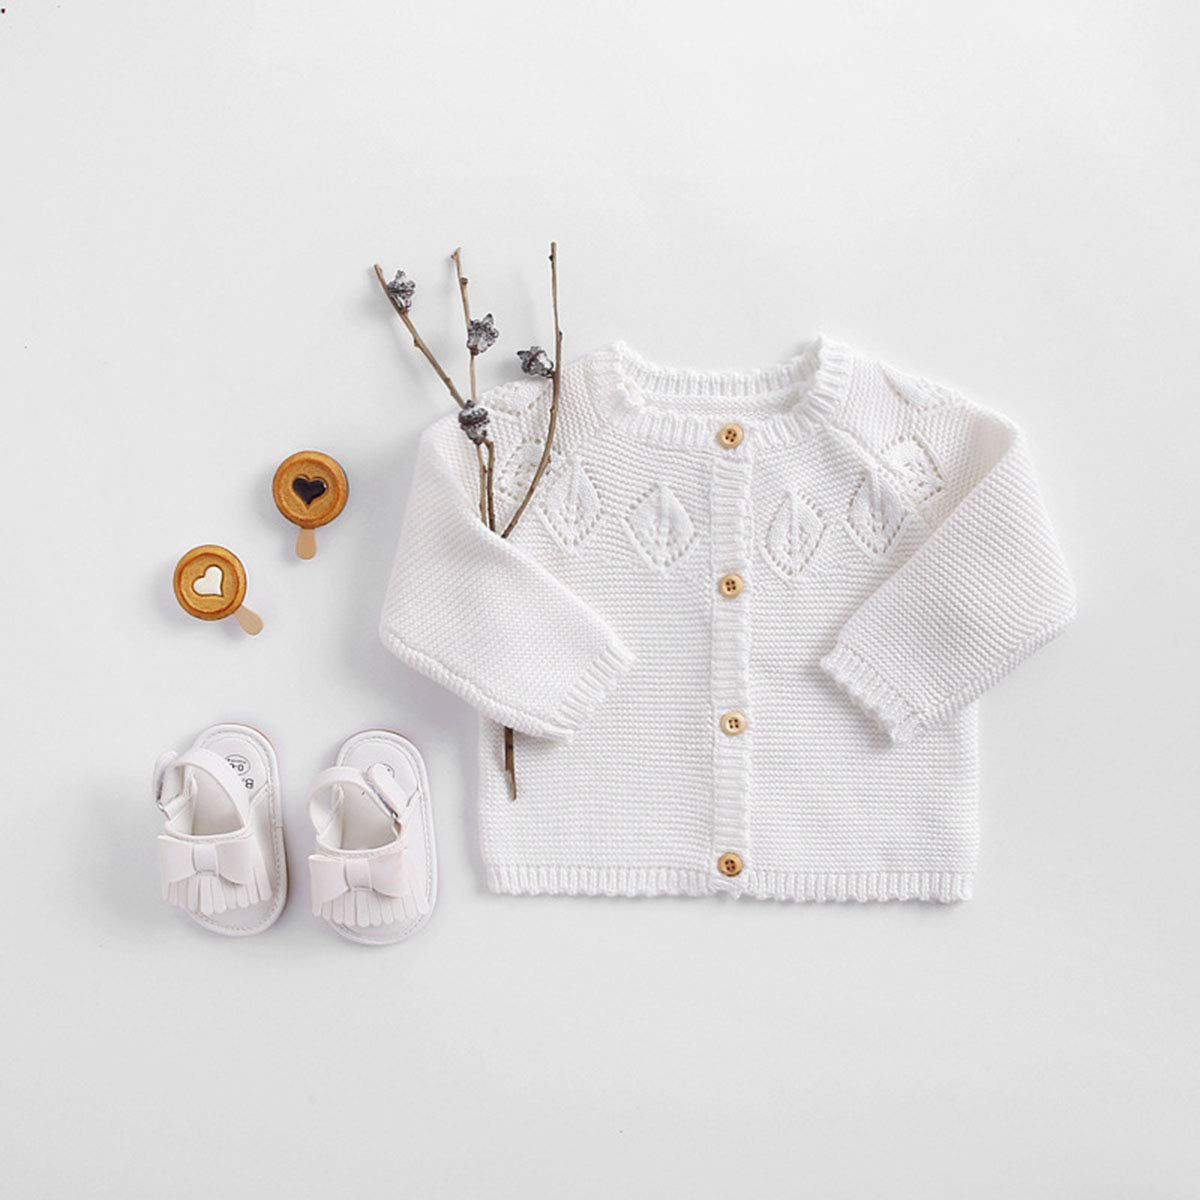 Hermk Toddler Baby Girls Long Sleeve Knitted Cardigan Sweaters Button-Down Cotton Crew Neck Coat Outerwear Fall Winter 0-24M